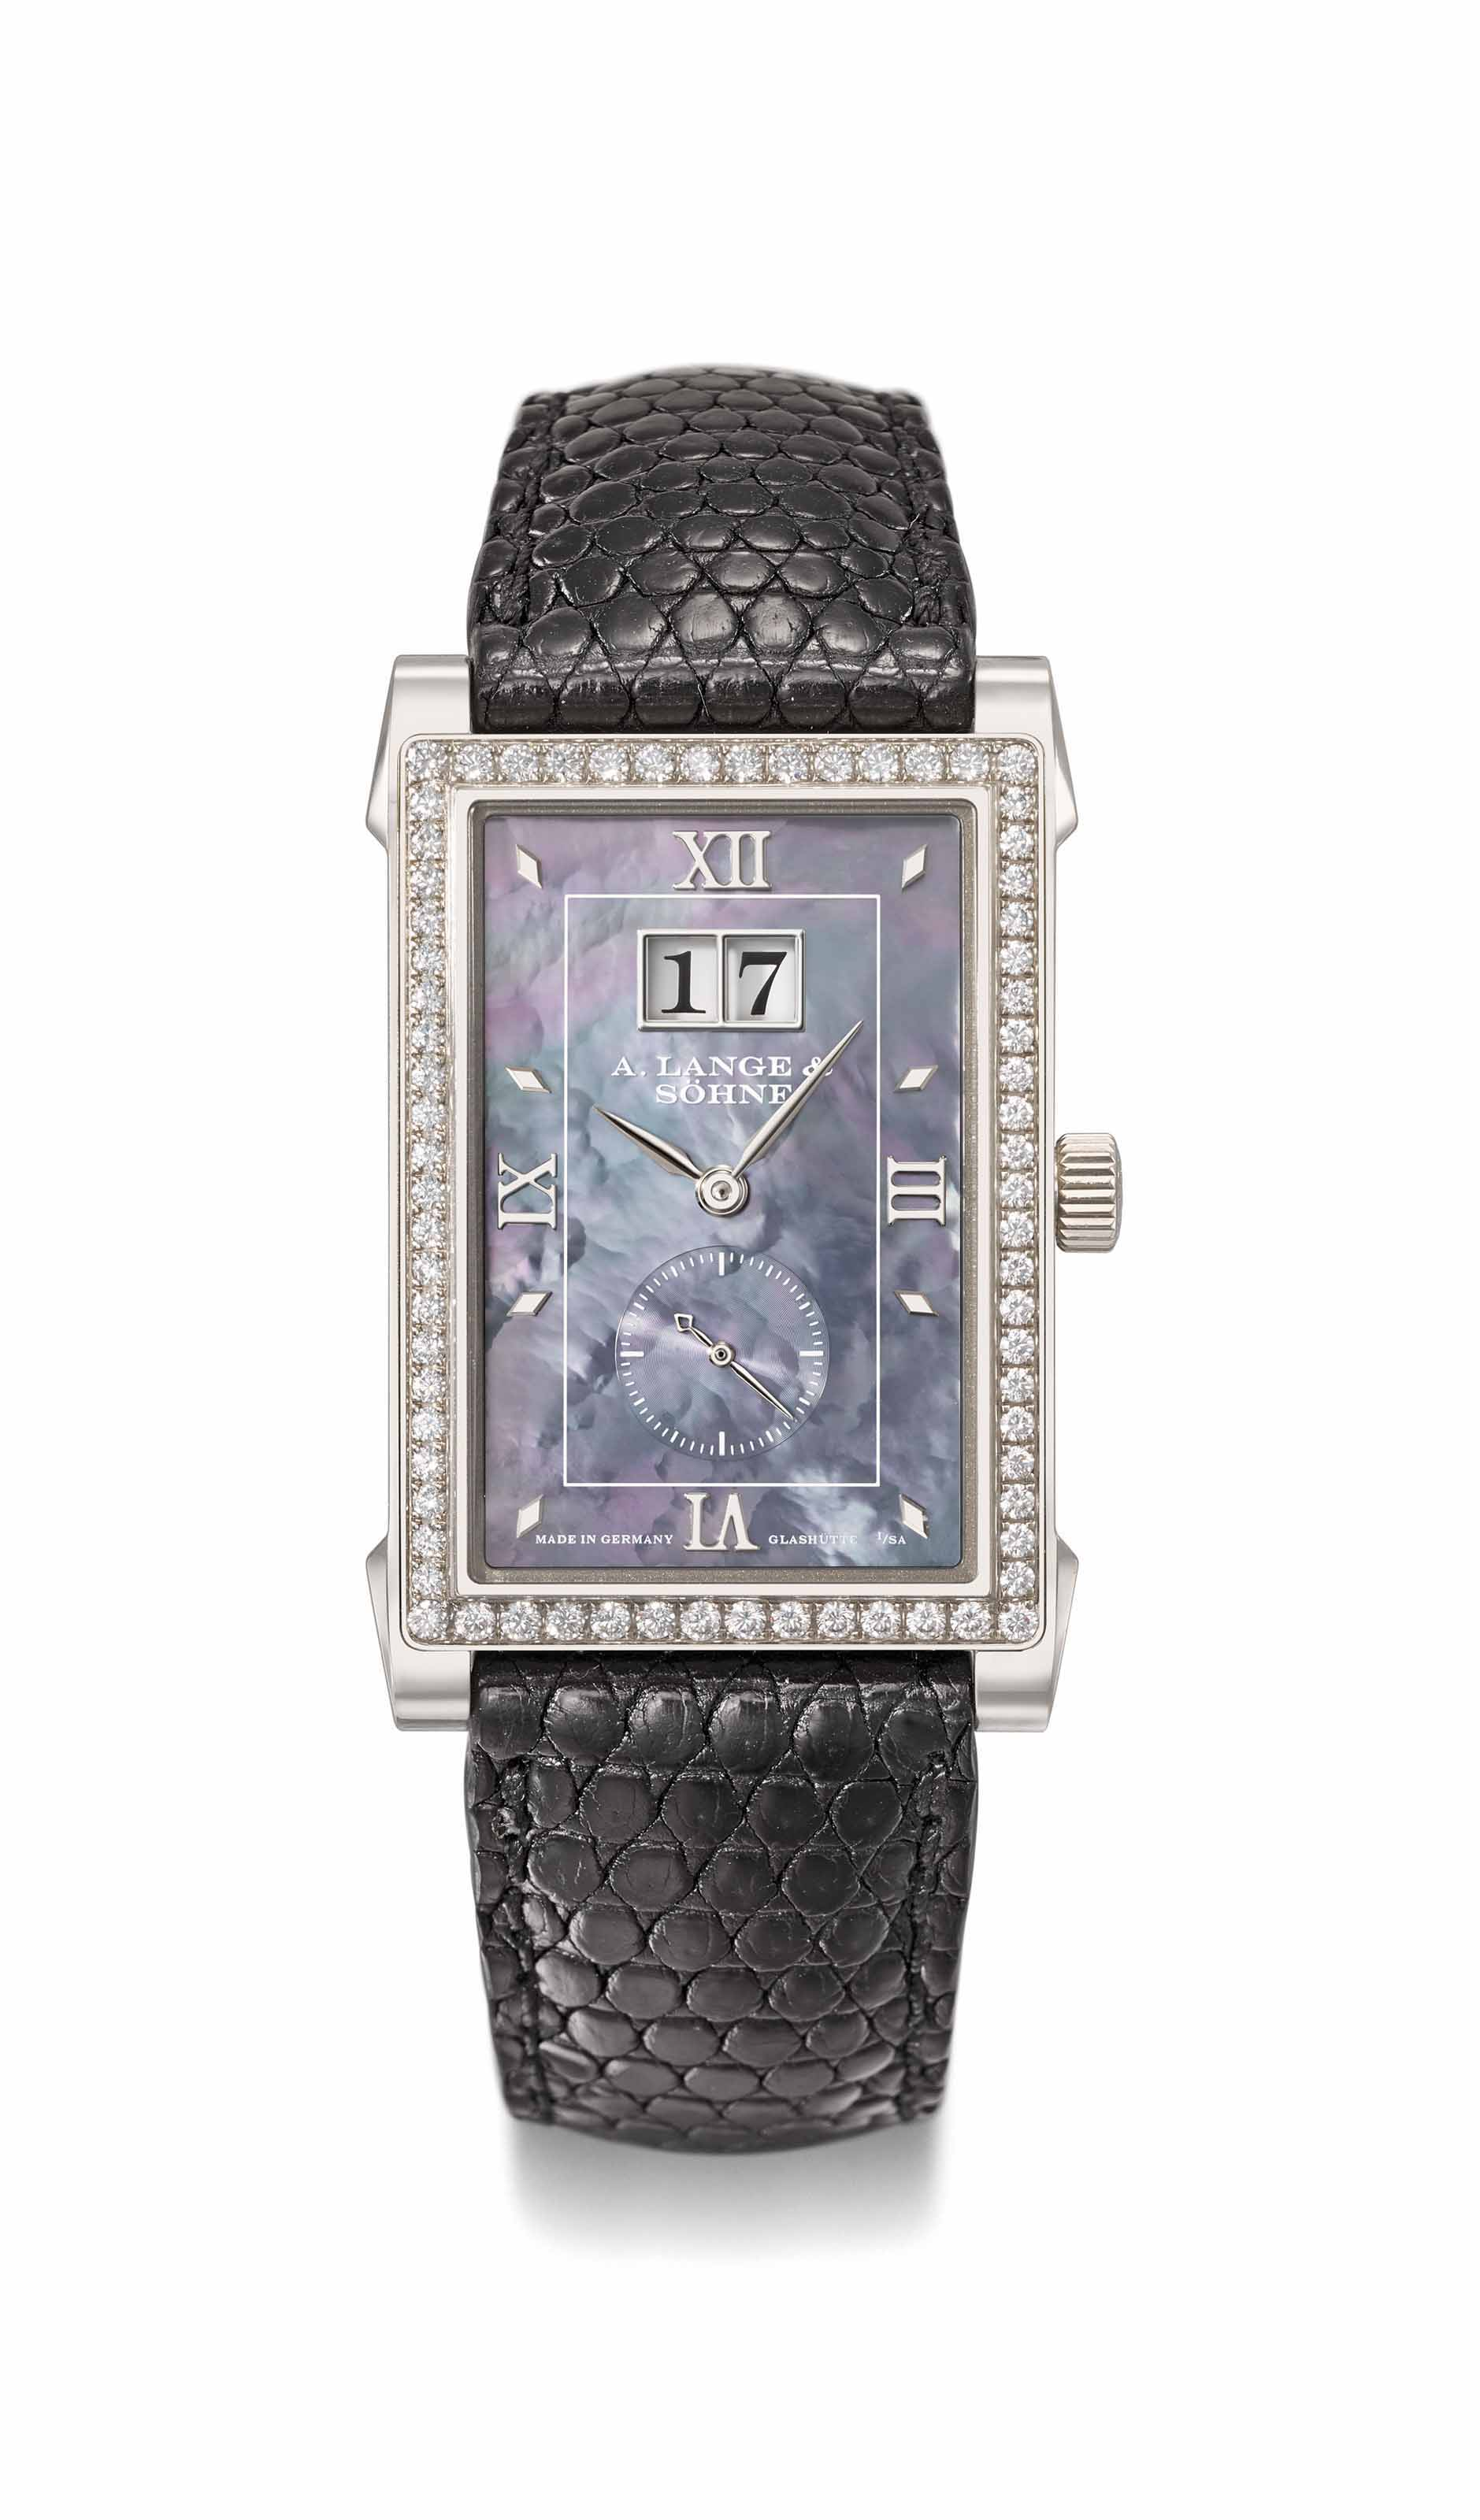 A. Lange & Söhne. A fine and rare limited edition 18K white gold and diamond-set rectangular wristwatch with date, mother-of-pearl dial and guarantee